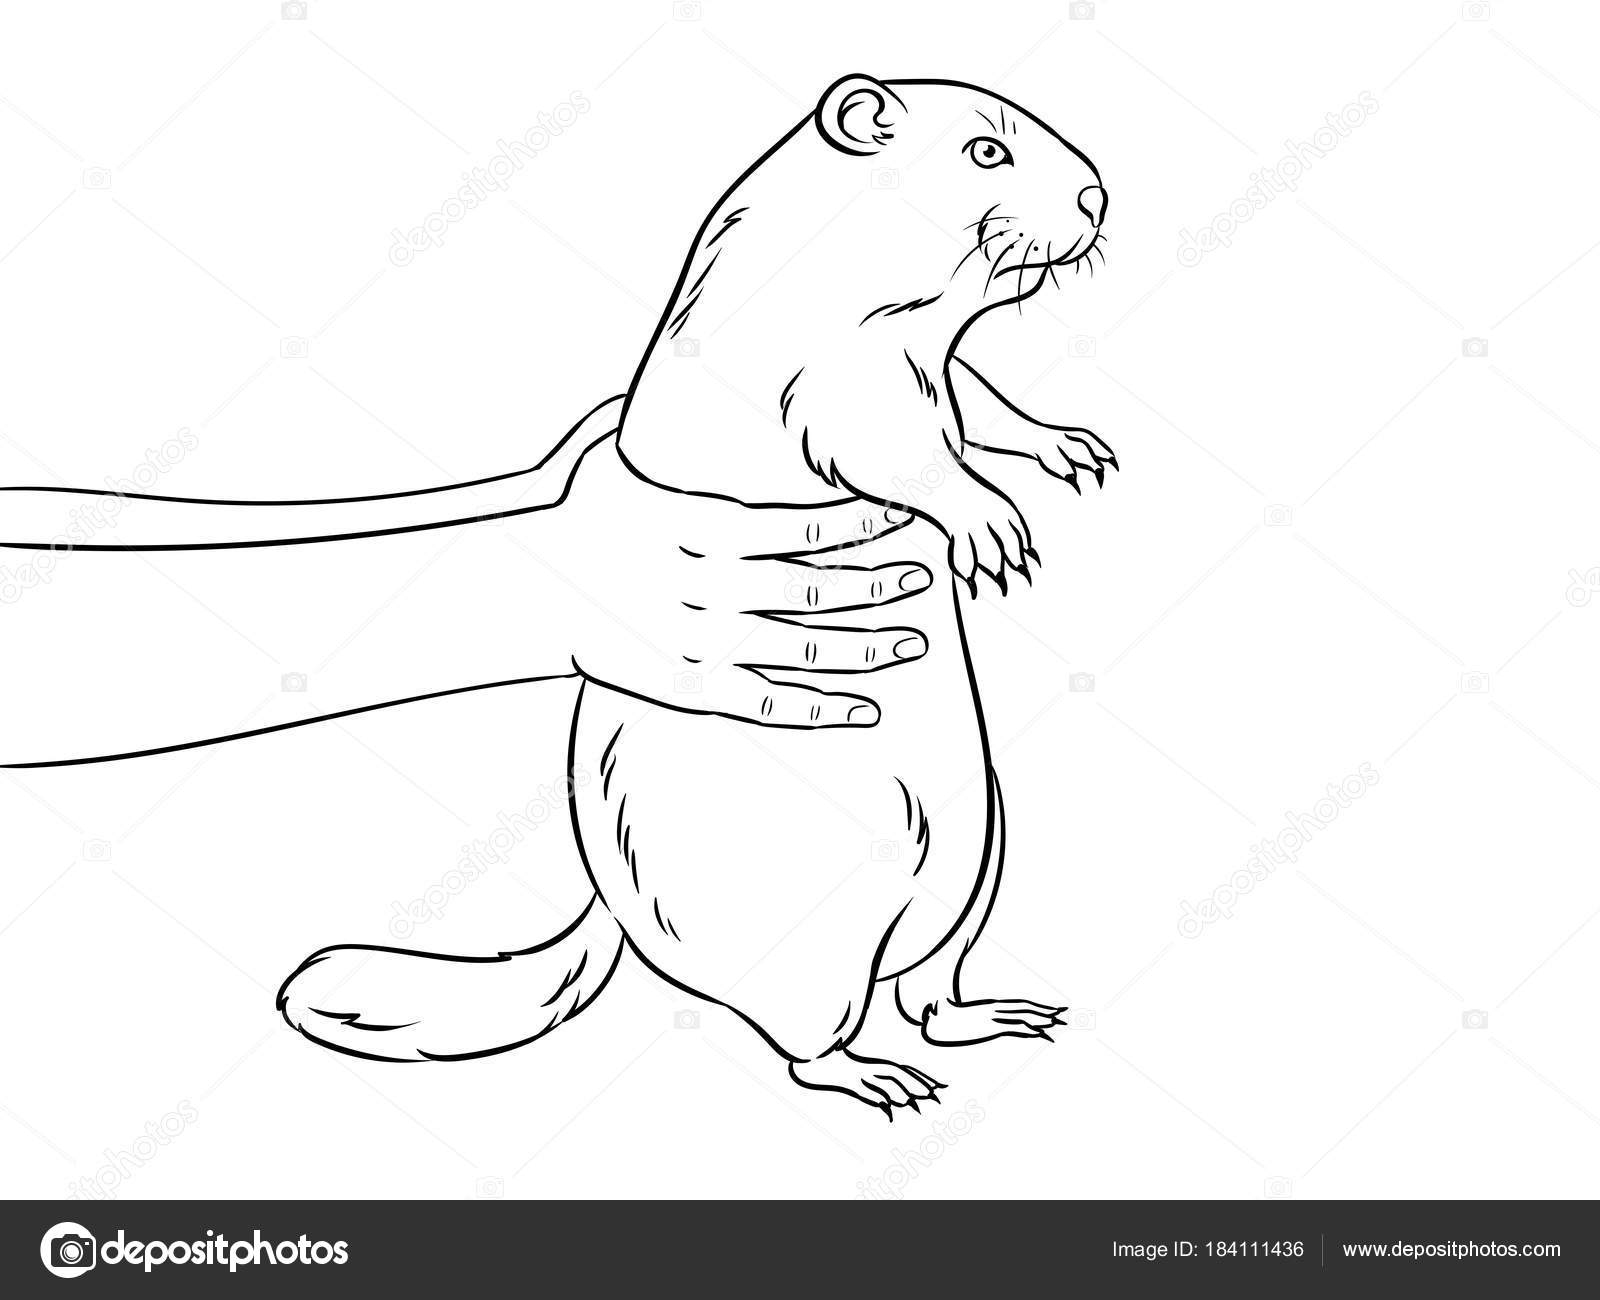 Marmota en manos vector libro de colorear — Vector de stock ...